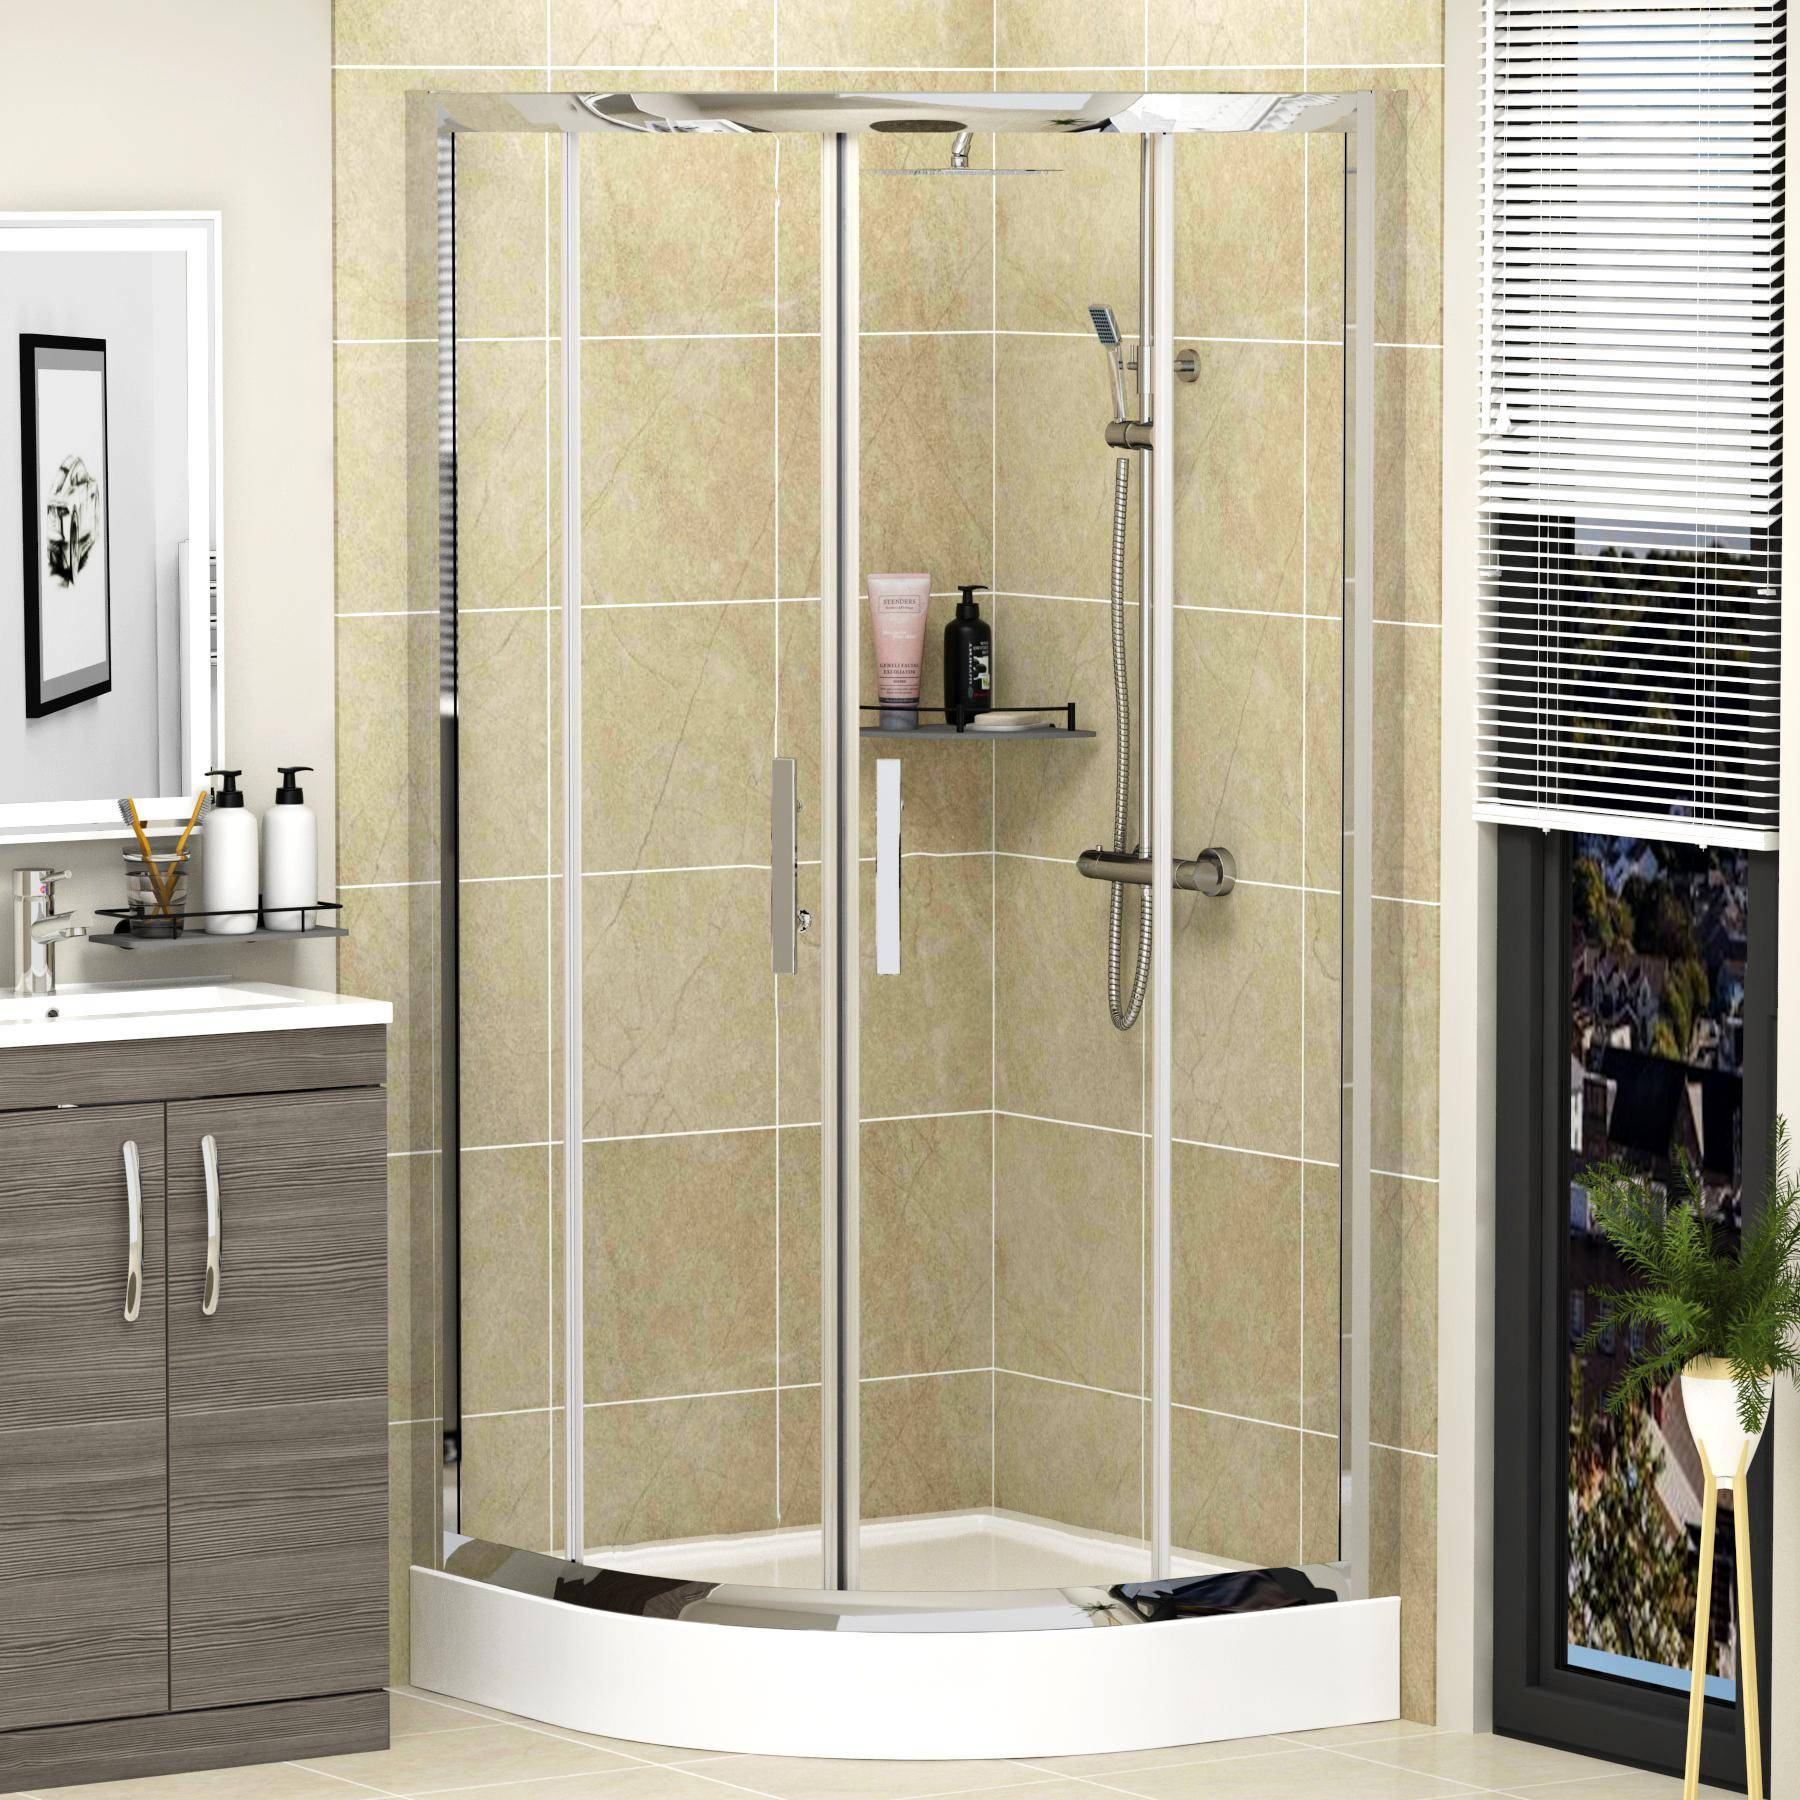 Royal Bathrooms Imperial 700mm Quadrant Shower Enclosure with High Tray - 6mm Double Door